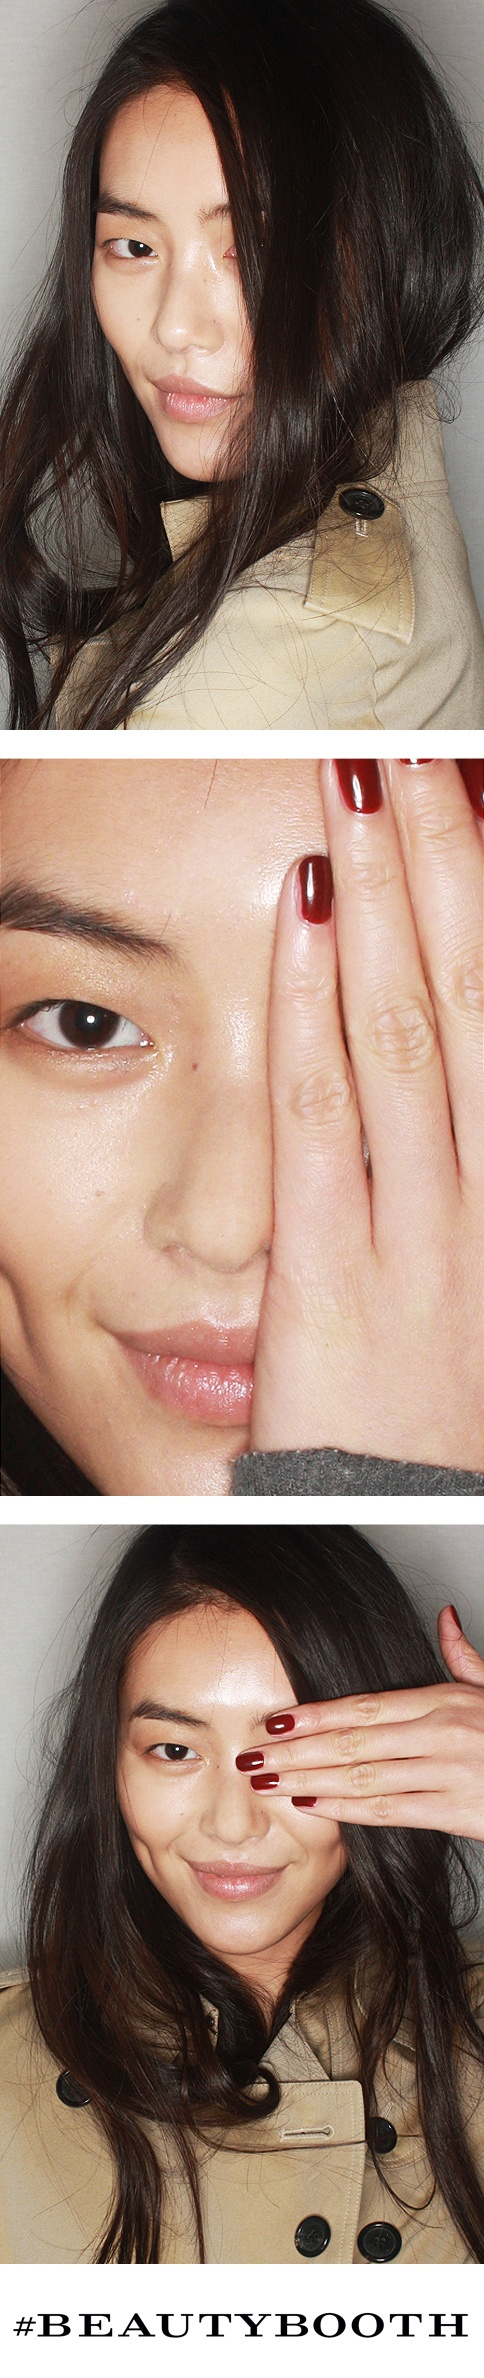 Liu Wen wearing the Trench Kiss runway look in the #BeautyBooth backstage at the Burberry Prorsum Autumn/Winter 2013 show